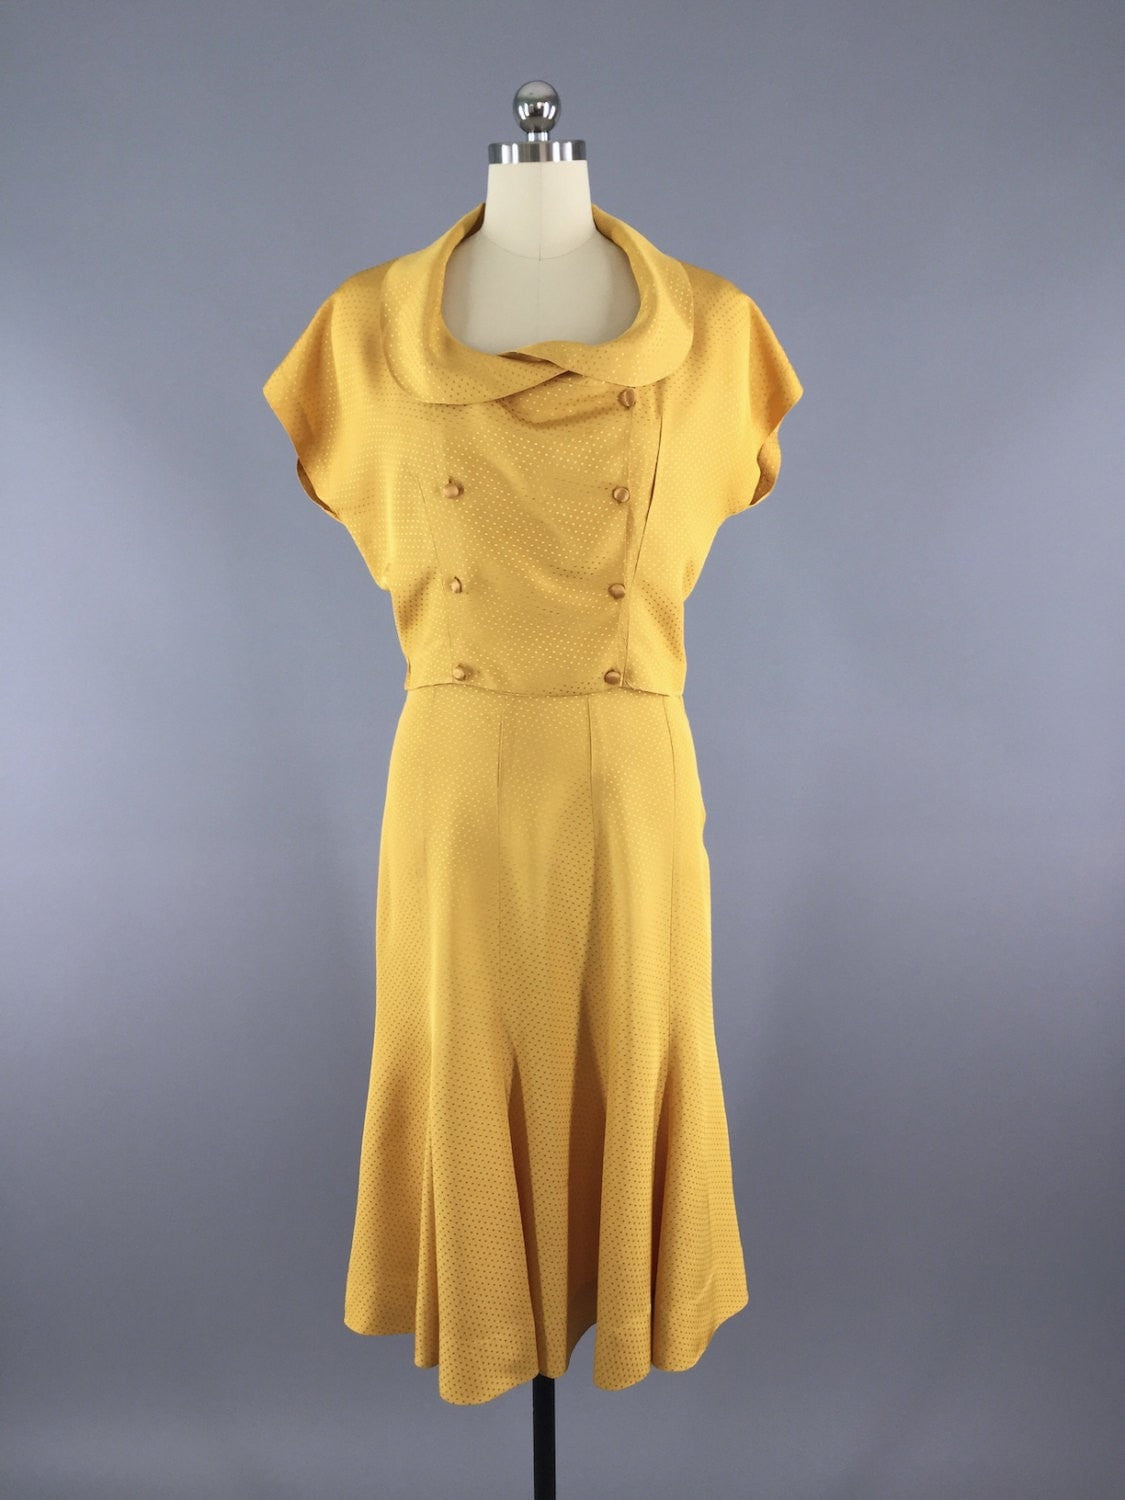 Vintage 1930s Day Dress / Skirt & Blouse Set Dress ThisBluebird